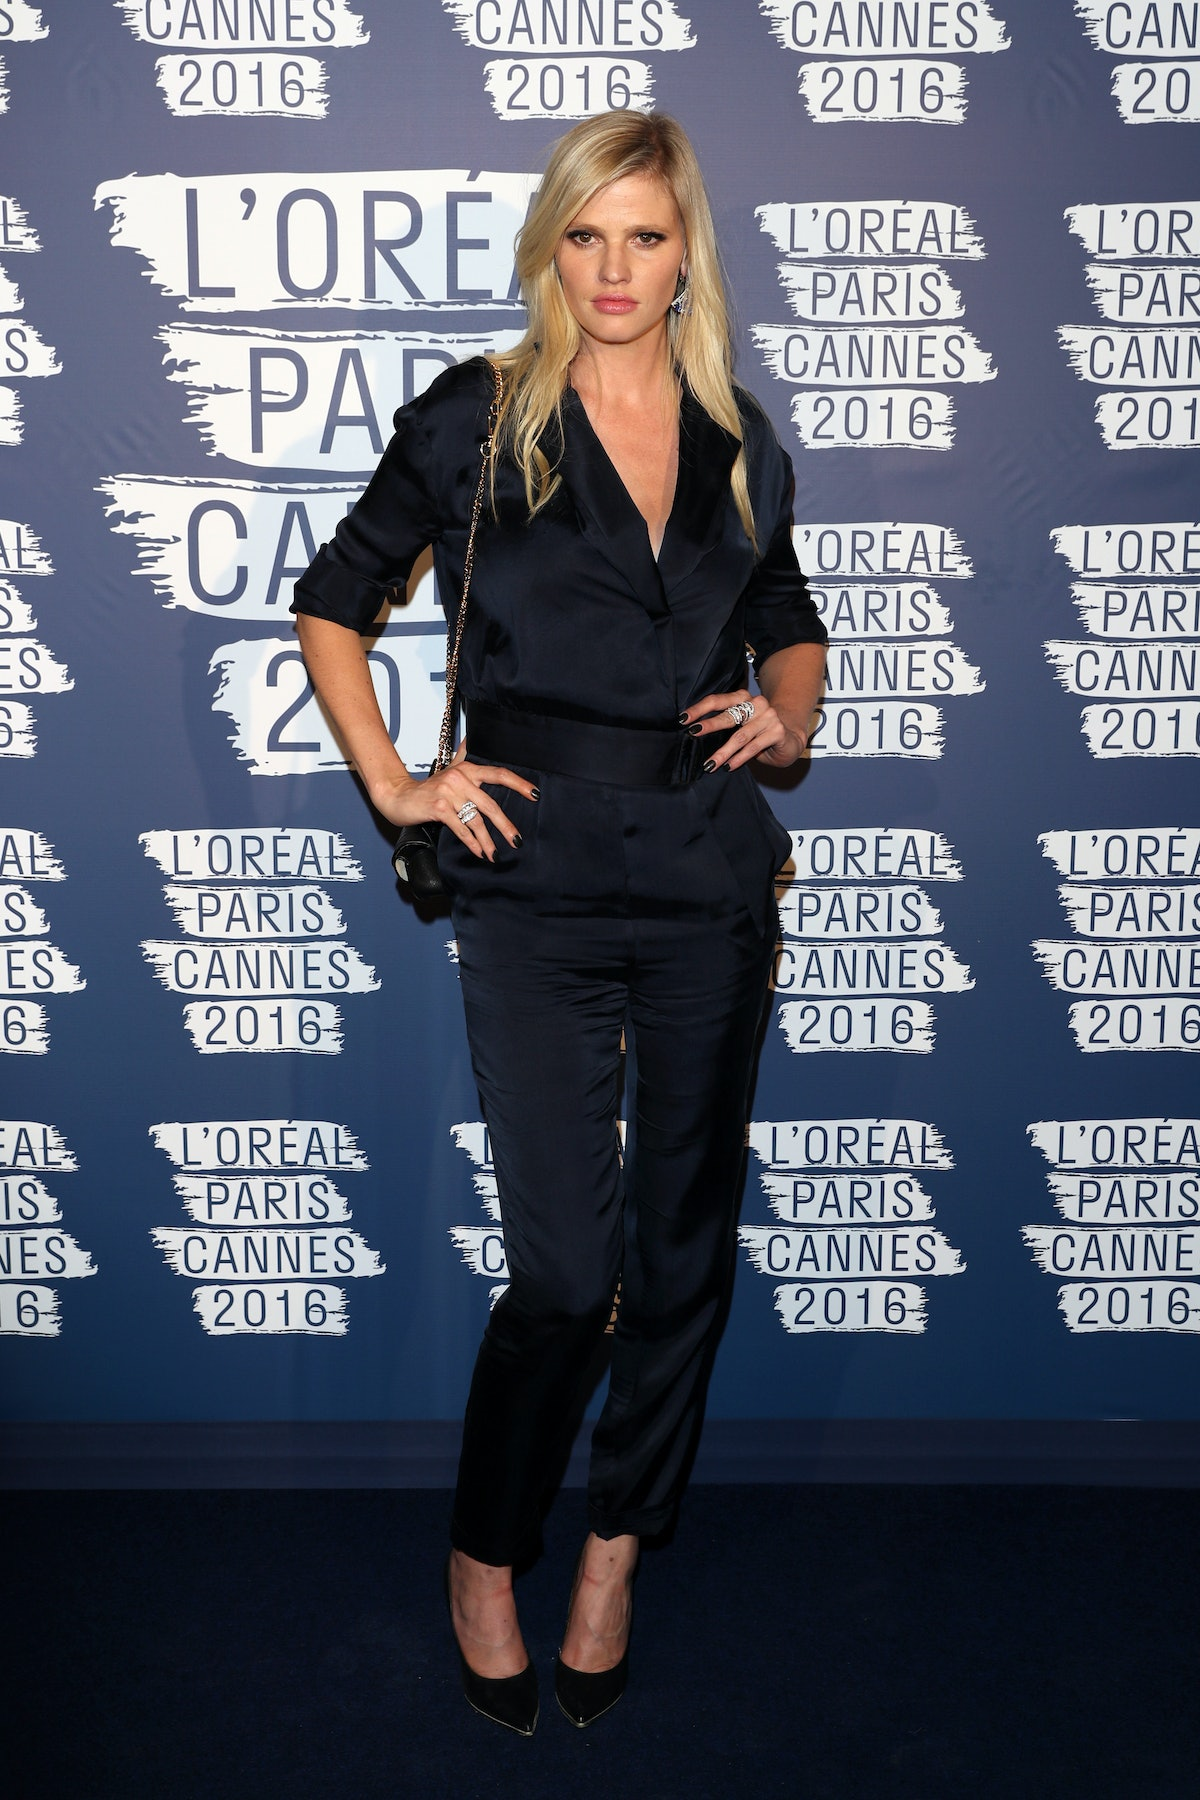 L'Oreal Paris Blue Obsession Party - The 69th Annual Cannes Film Festival